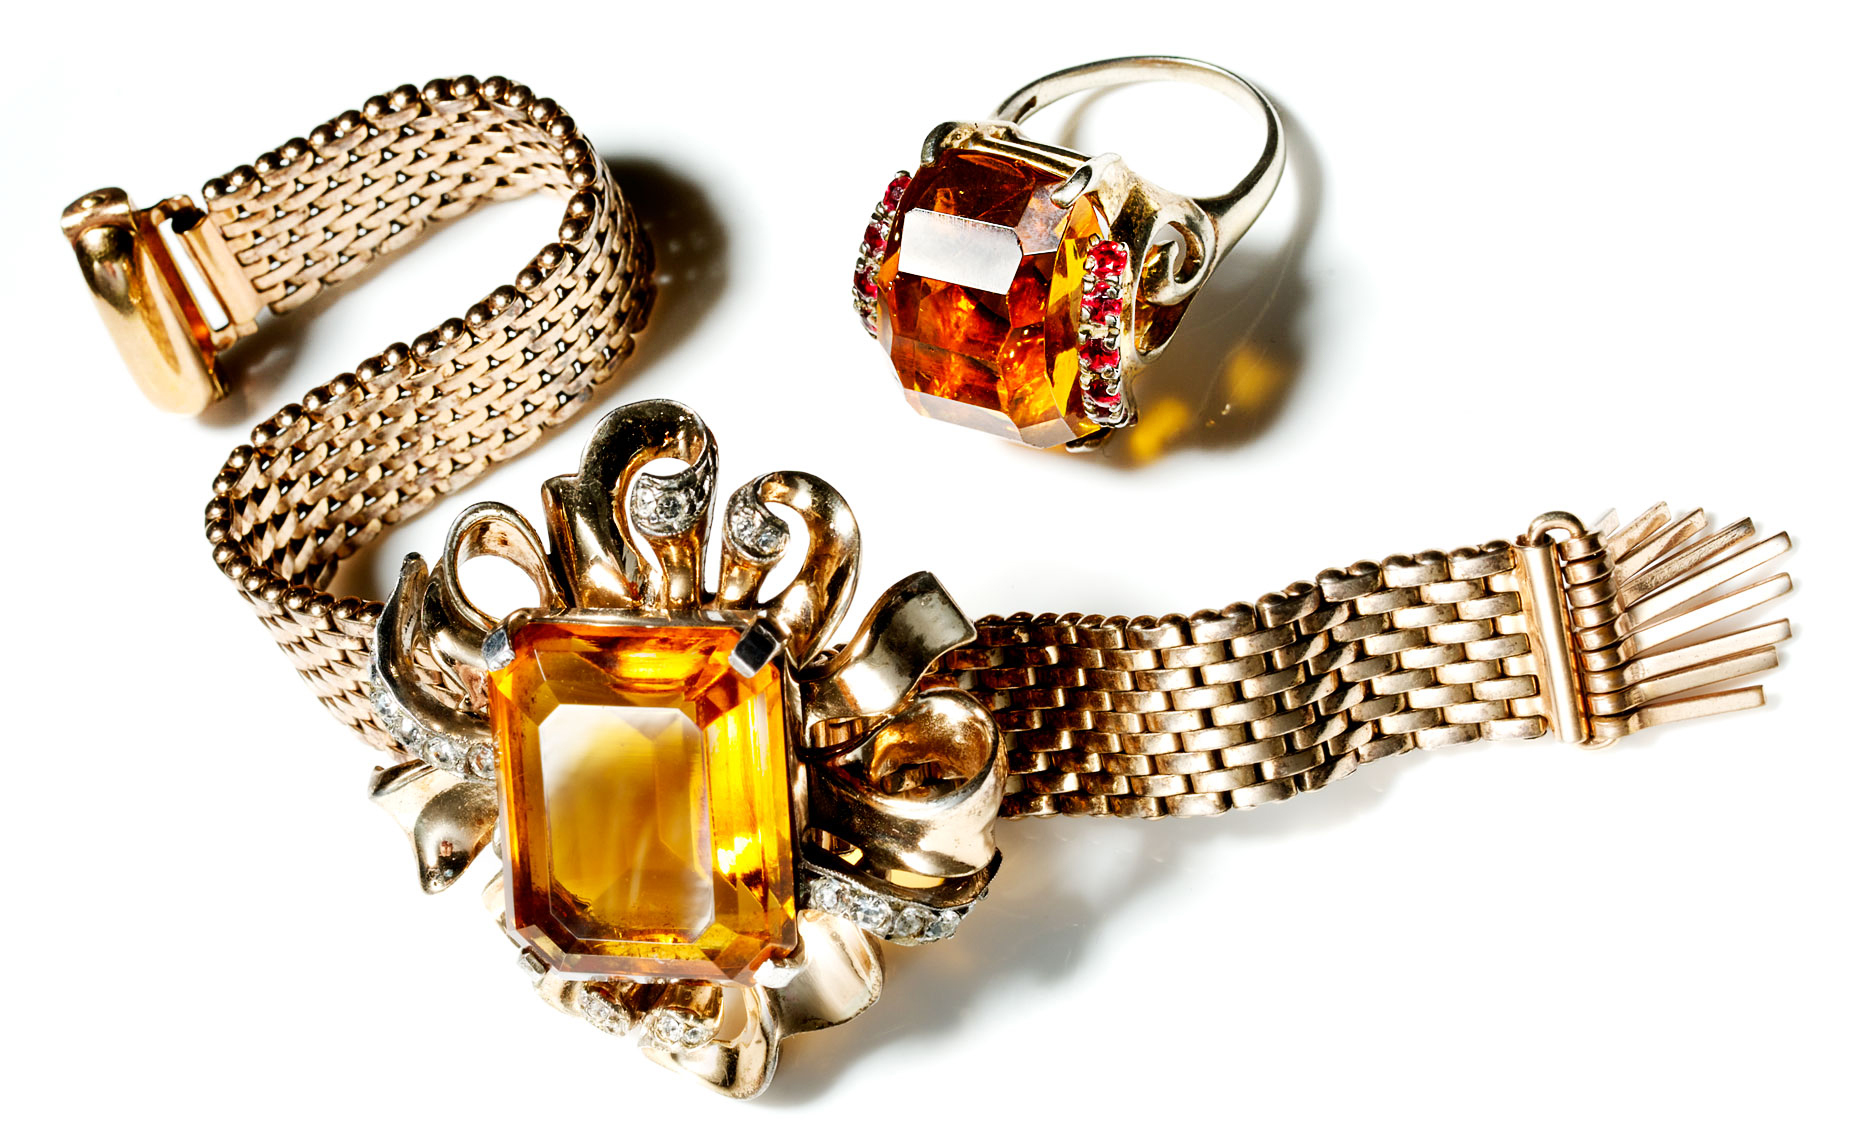 Liam Goodman - Still Life Photographer - Jewelry 13